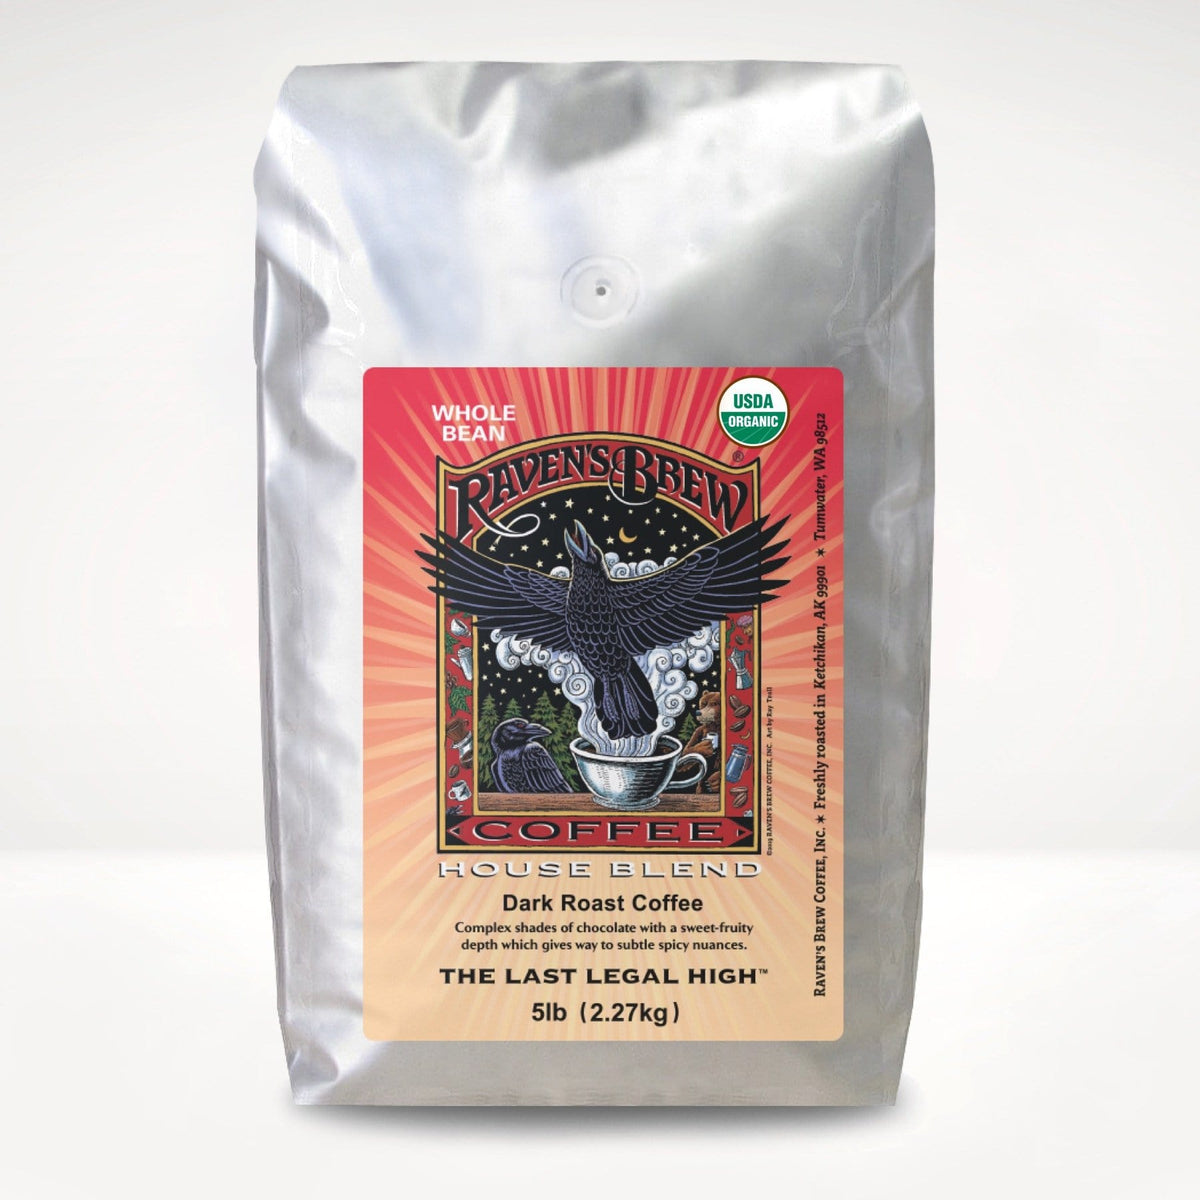 5lb Organic Raven's Brew® House Blend Coffee